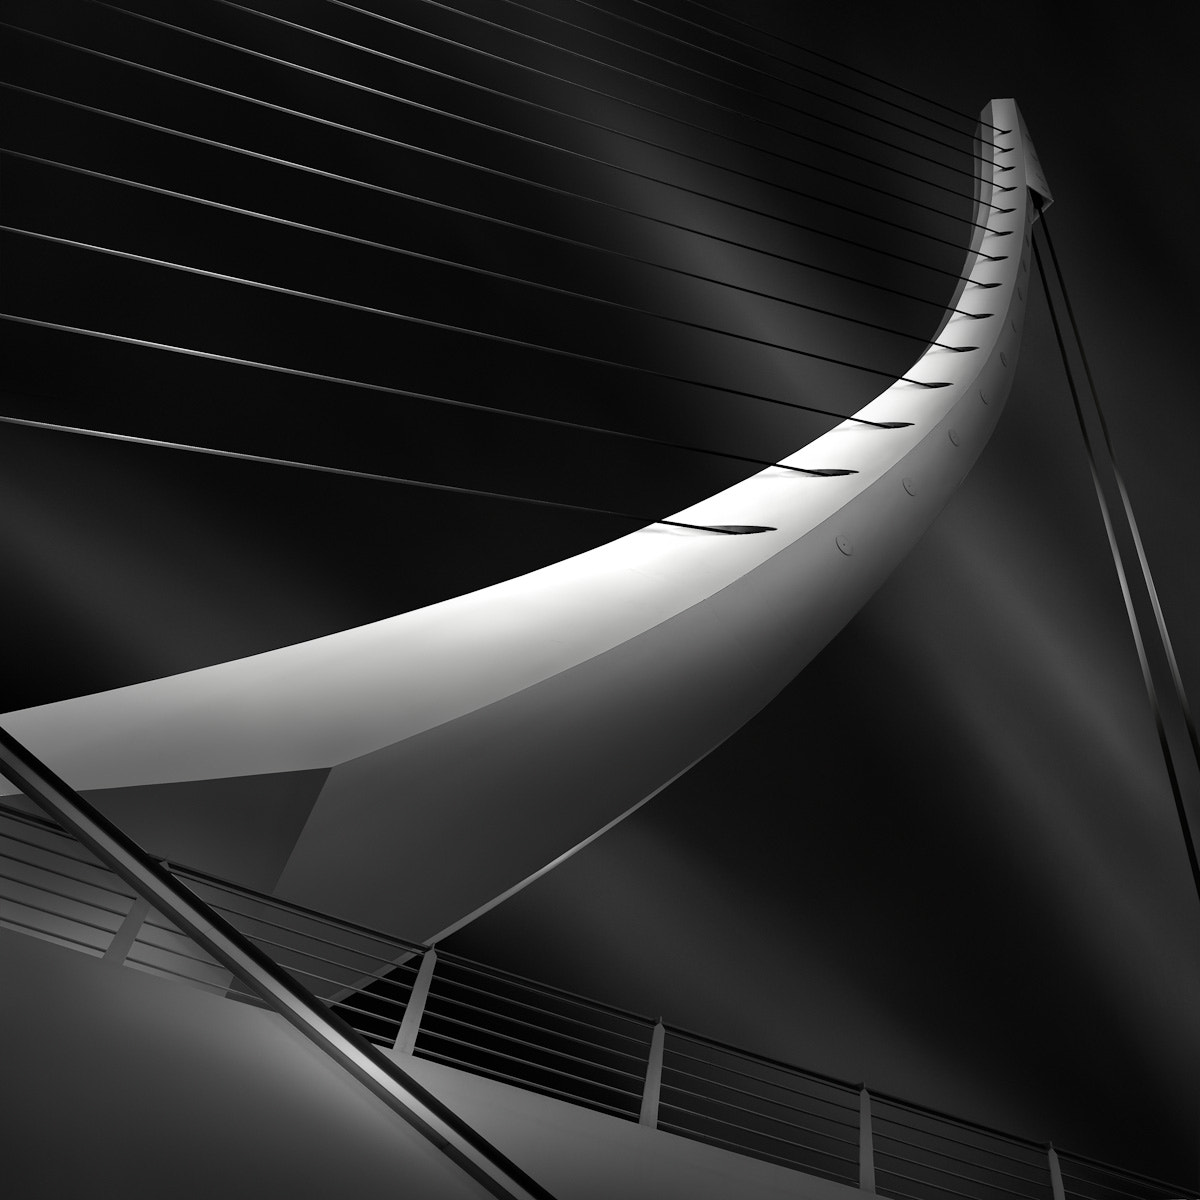 Photograph like a harp's strings II by Julia Anna Gospodarou on 500px